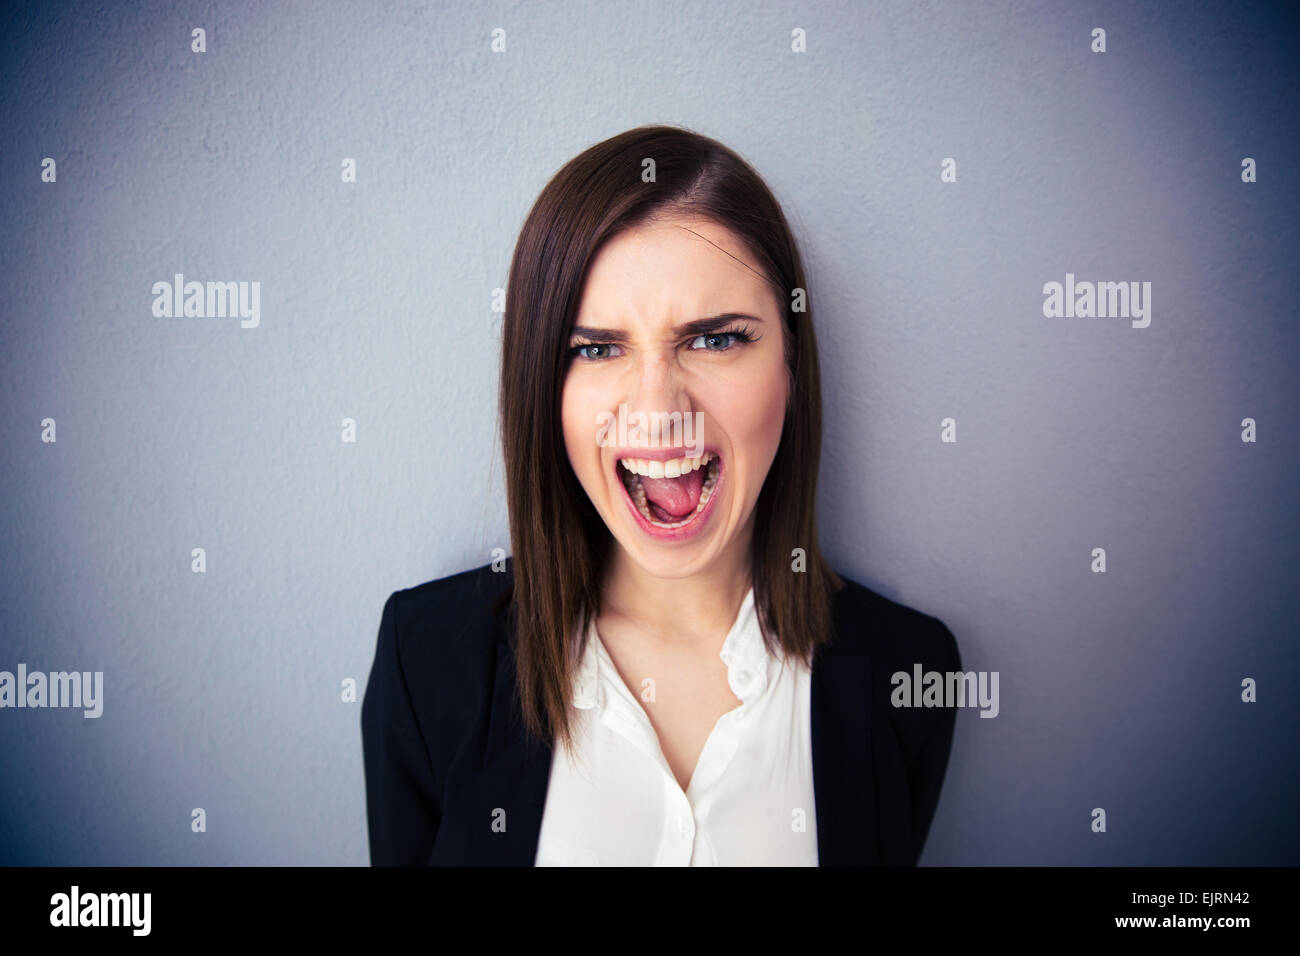 Angry businesswoman criant sur fond gris. Looking at camera Photo Stock